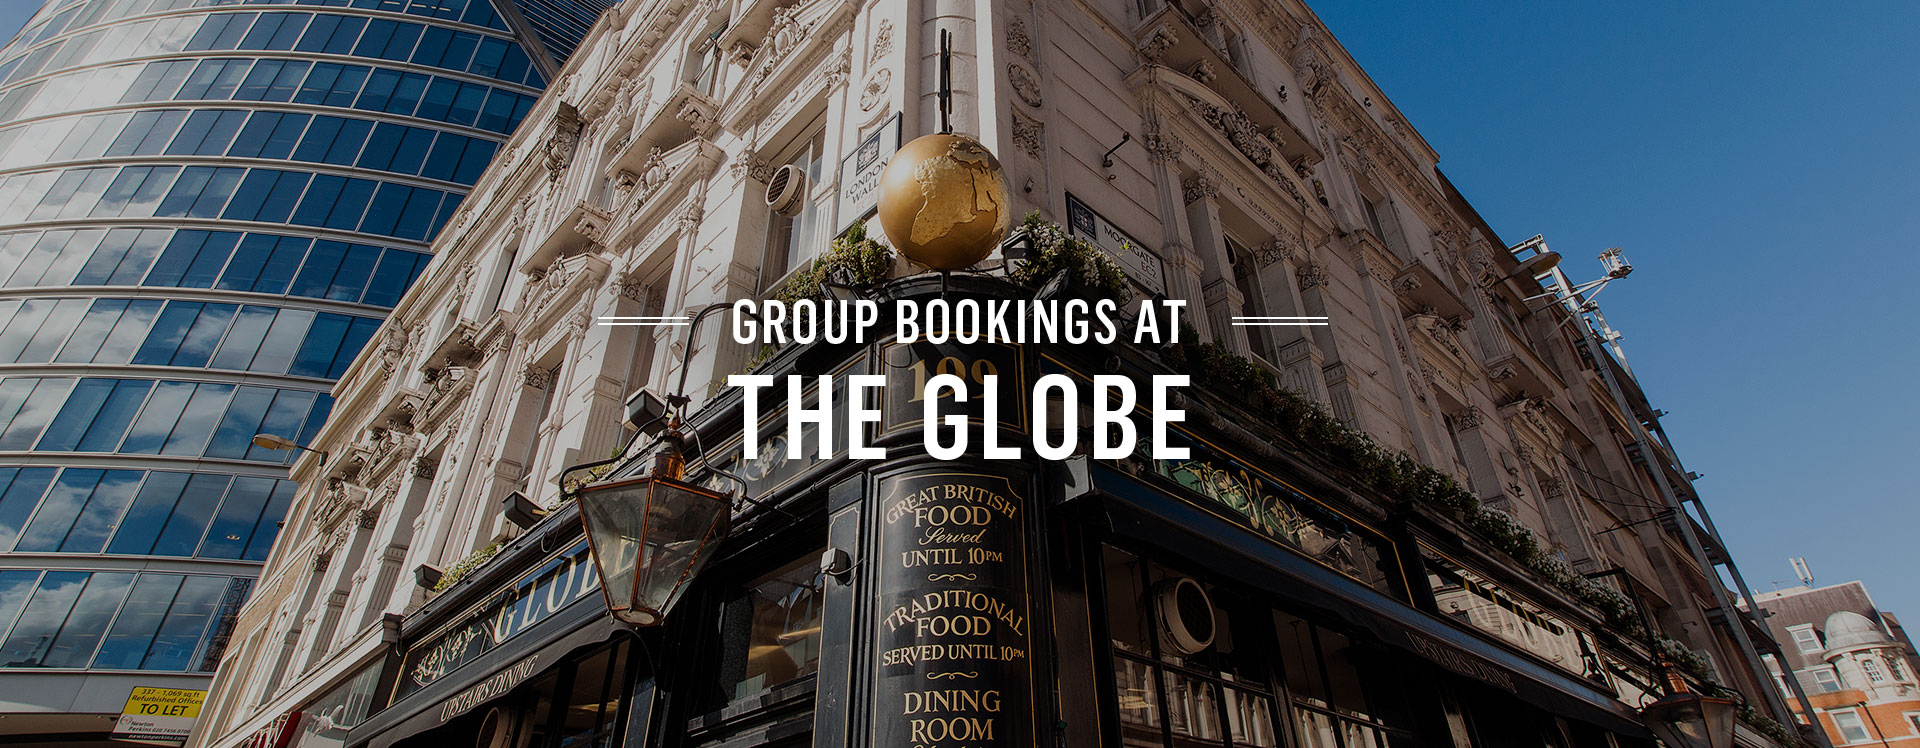 Group Bookings at The Globe